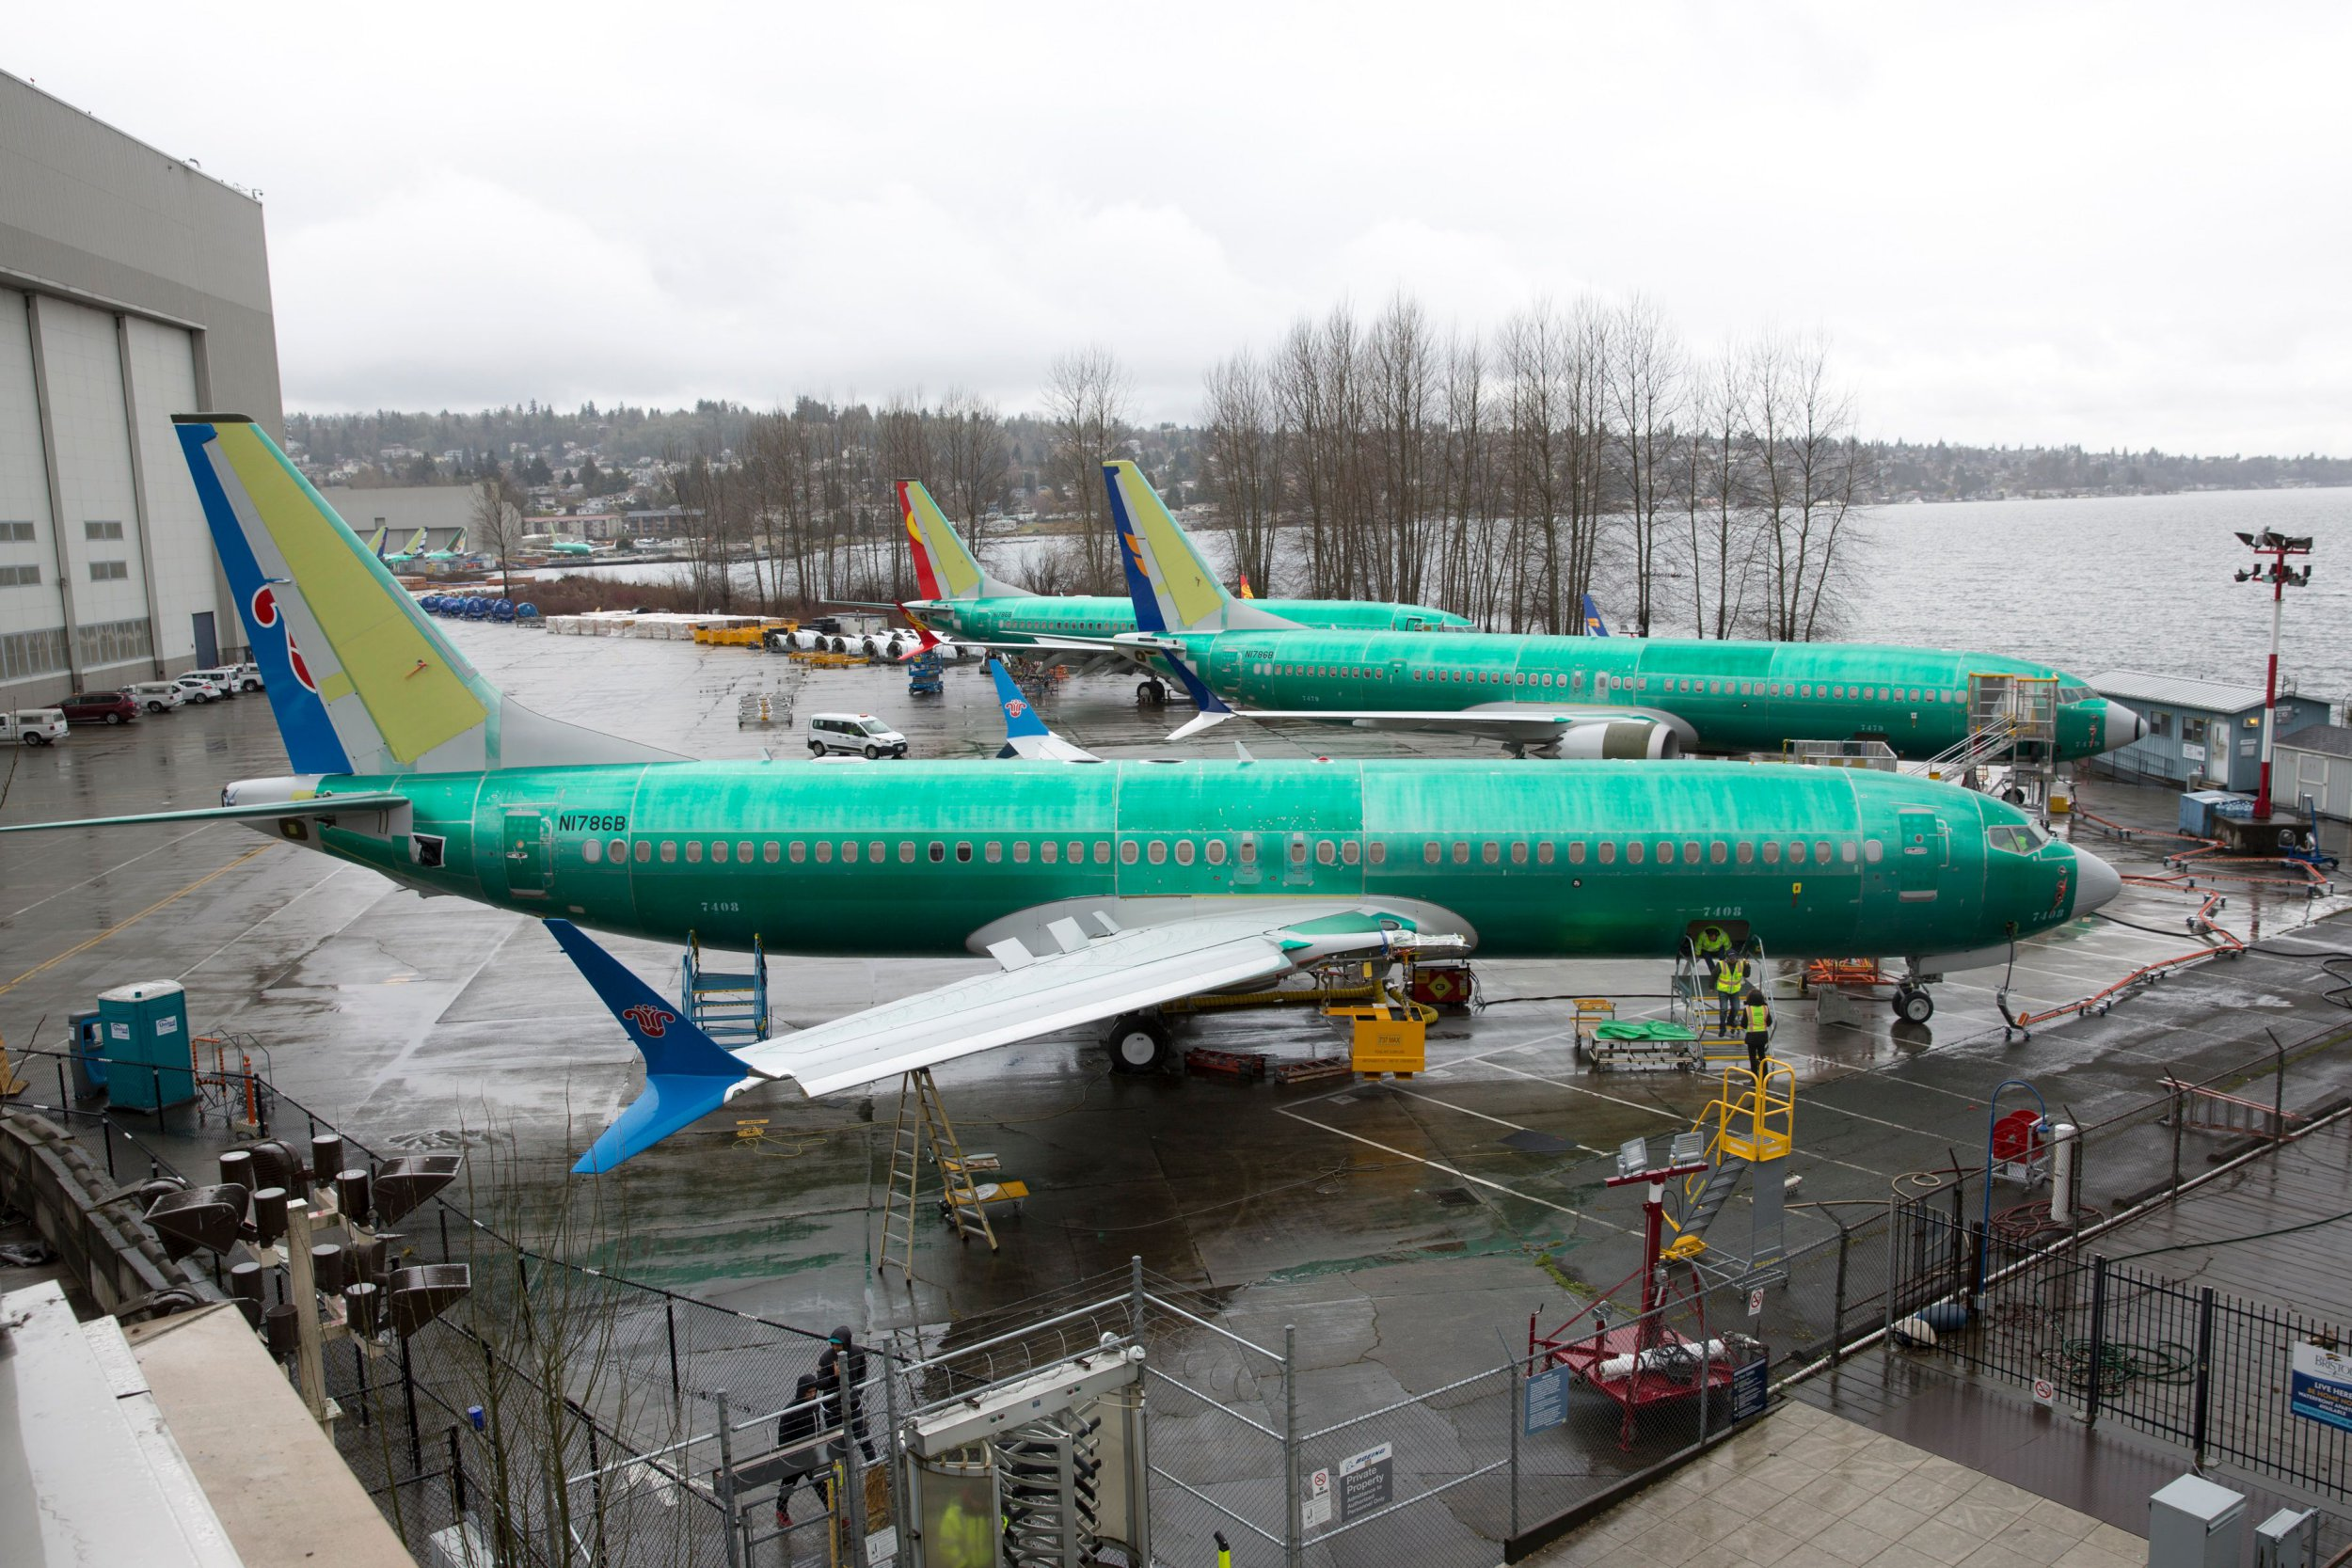 A Boeing 737 MAX 8 for China Southern Airlines (front) is graphic during a Boeing Renton Factory in Renton, Washington on Mar 12, 2019. - US President Donald Trump on Mar 13, 2019, announced a devise to belligerent all Boeing 737 MAX aircraft amid heated ubiquitous and domestic vigour following a second fatal pile-up in reduction than 5 months. We're going to be arising an puncture sequence of breach per all flights of a 737 MAX 8 and 737 MAX 9, Trump told reporters a White House. (Photo by Jason Redmond / AFP)JASON REDMOND/AFP/Getty Images